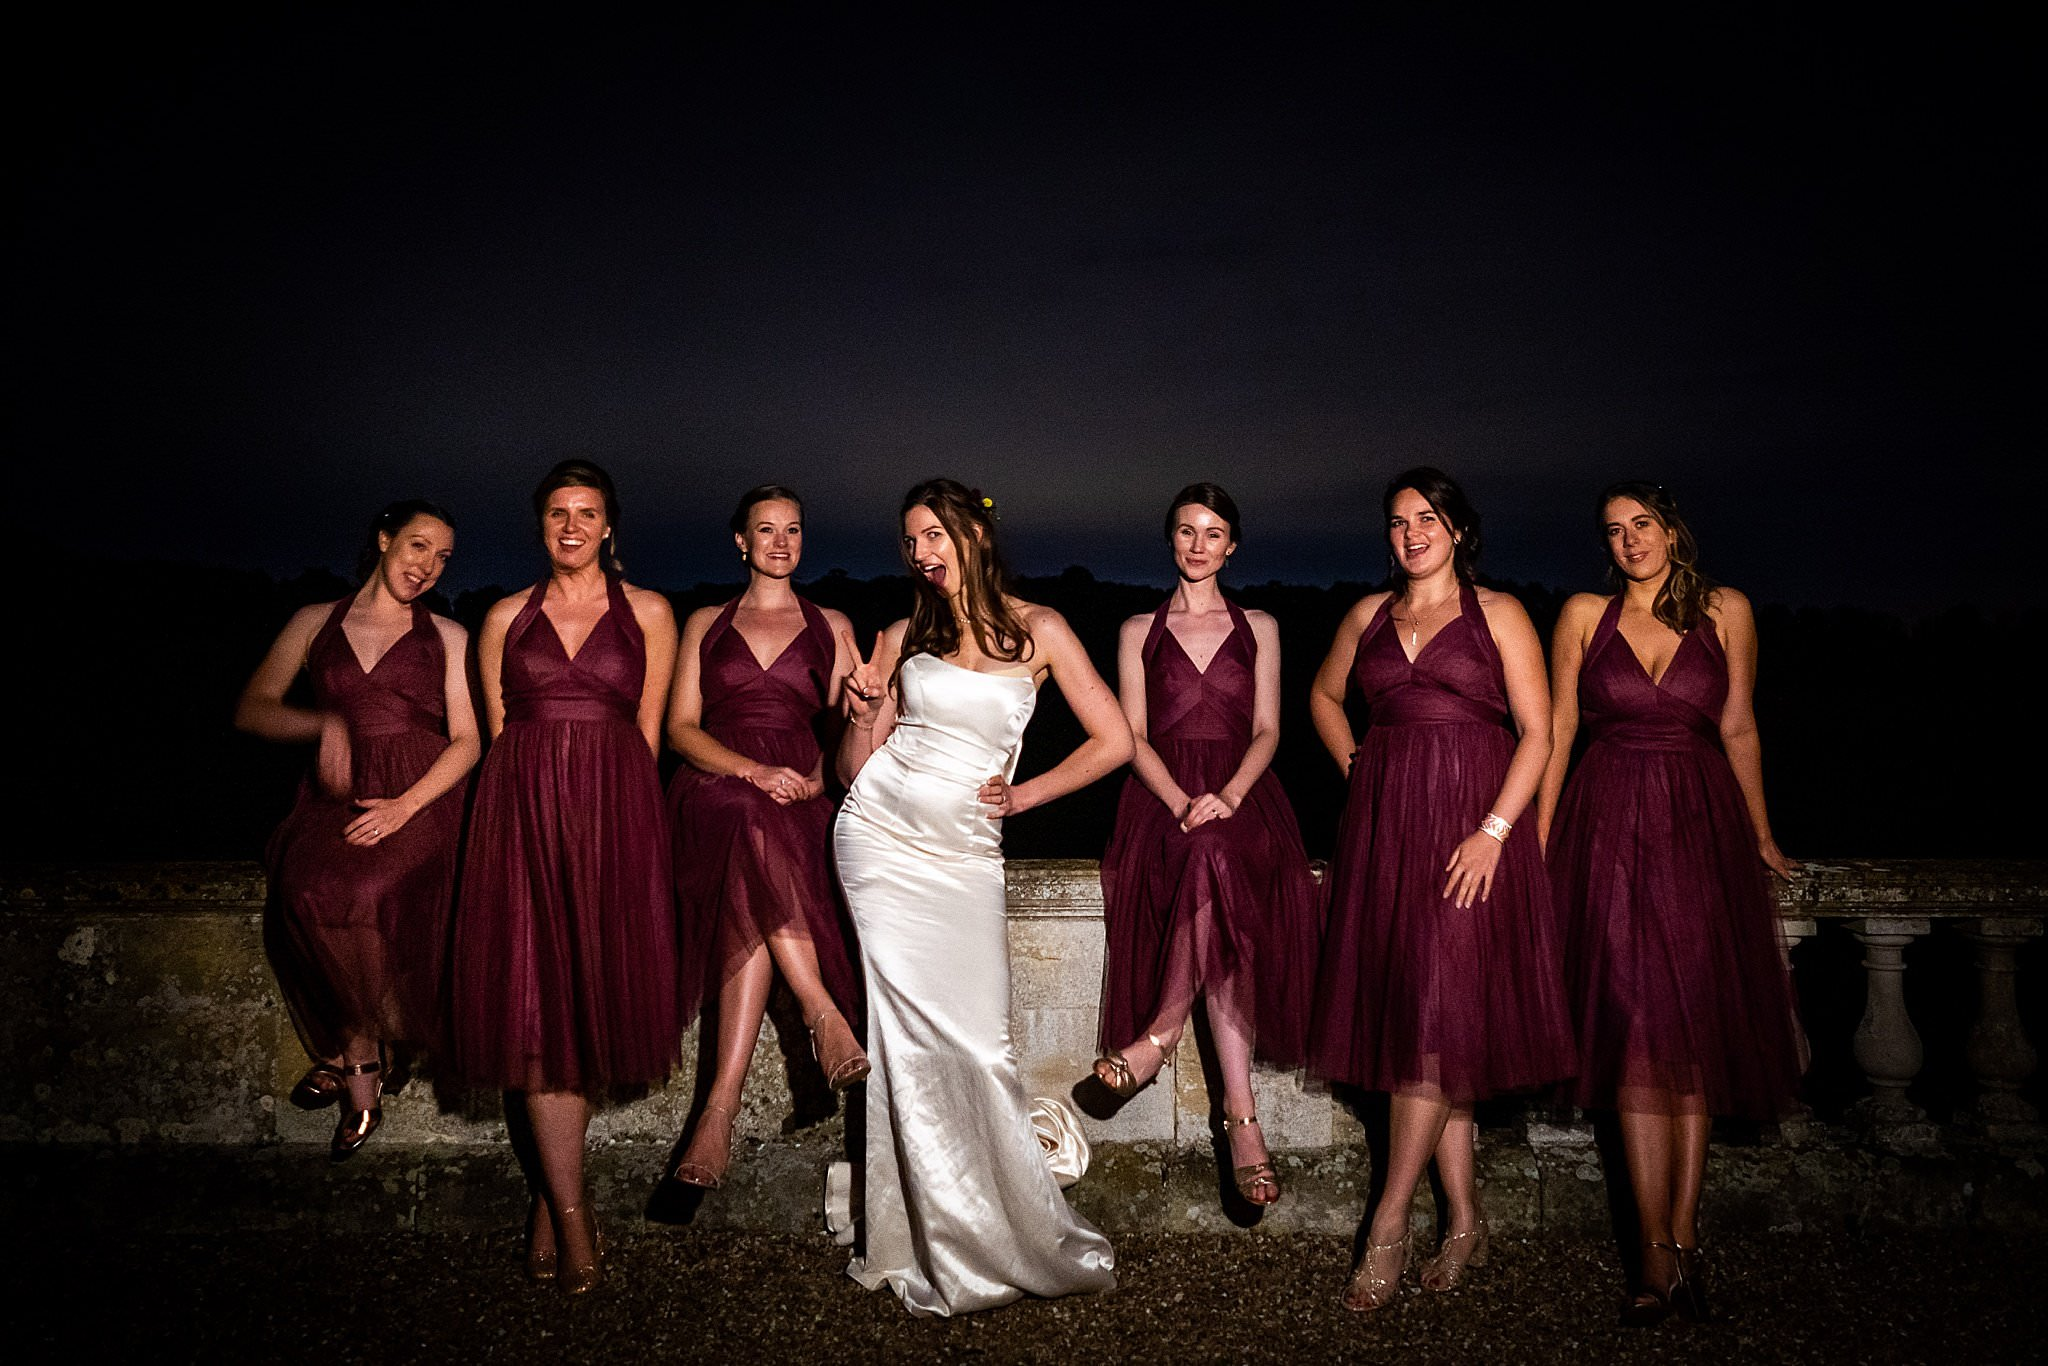 Bride poses with her bridesmaids outside at night at Prestwold Hall